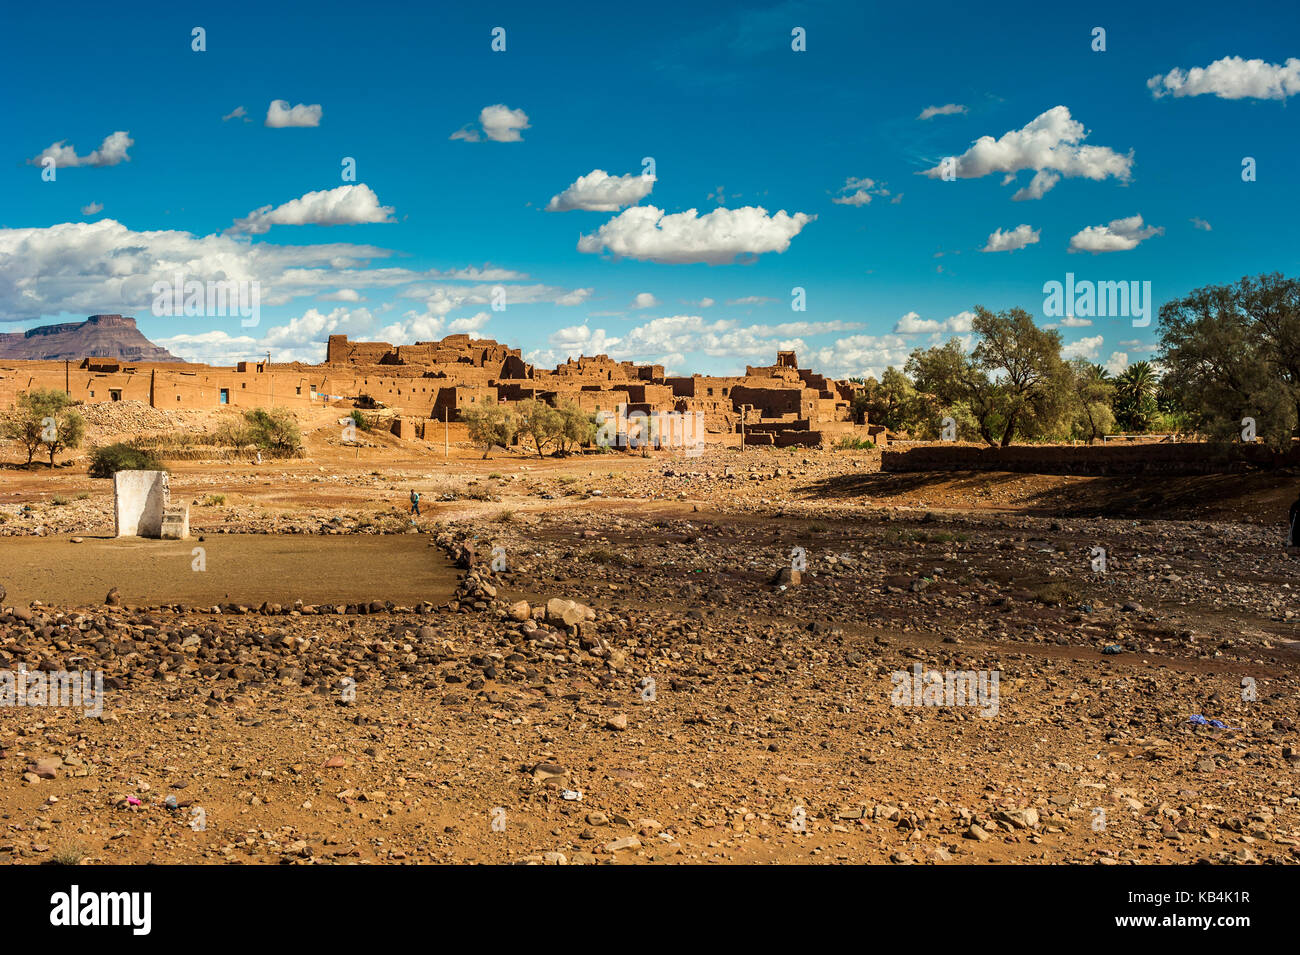 Traditional Berber Architecture Stock Photos Amp Traditional